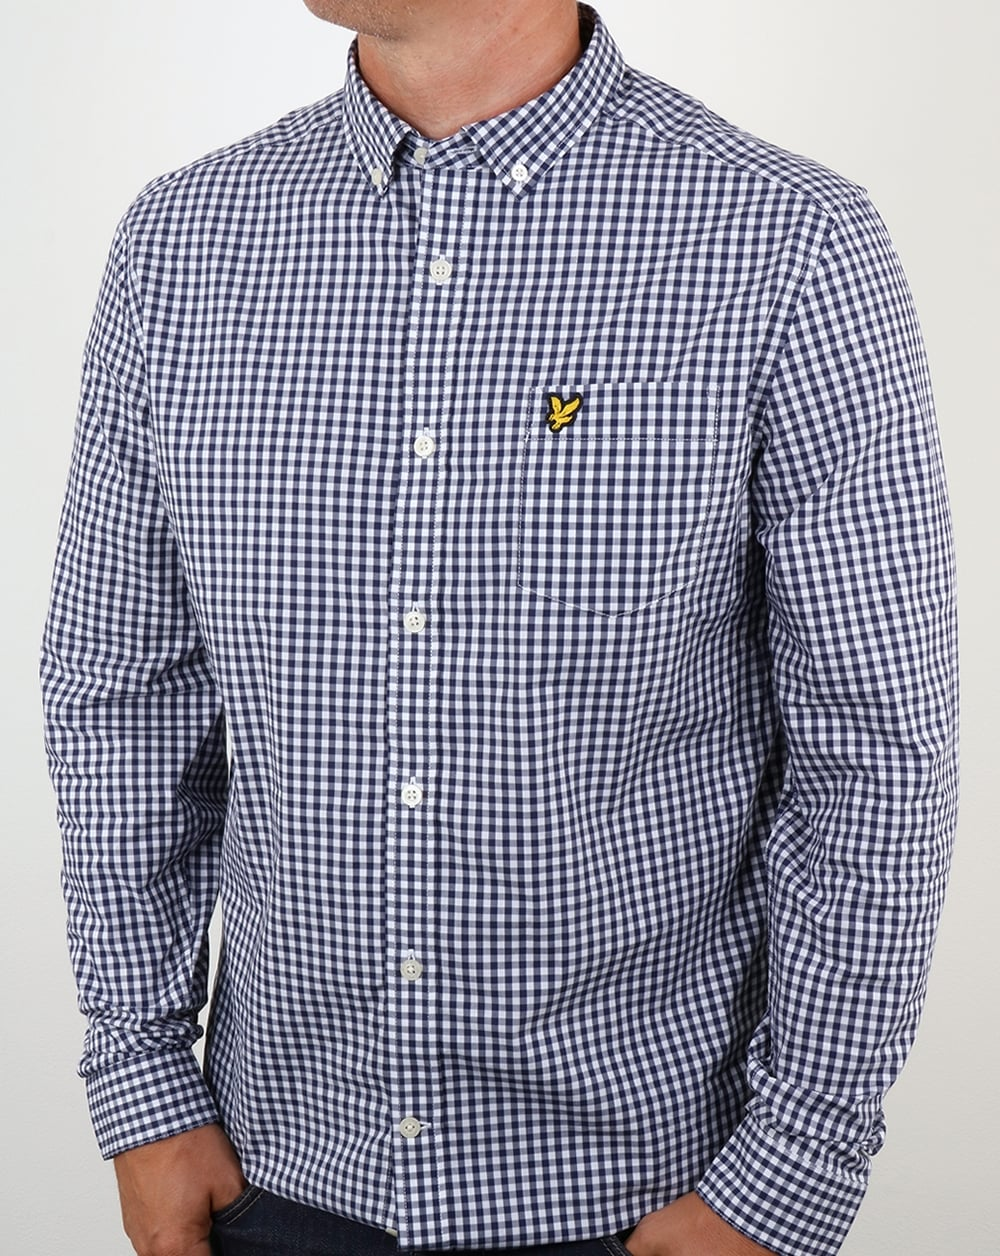 Lyle and scott gingham shirt navy long sleeve button down for Lyle and scott shirt sale